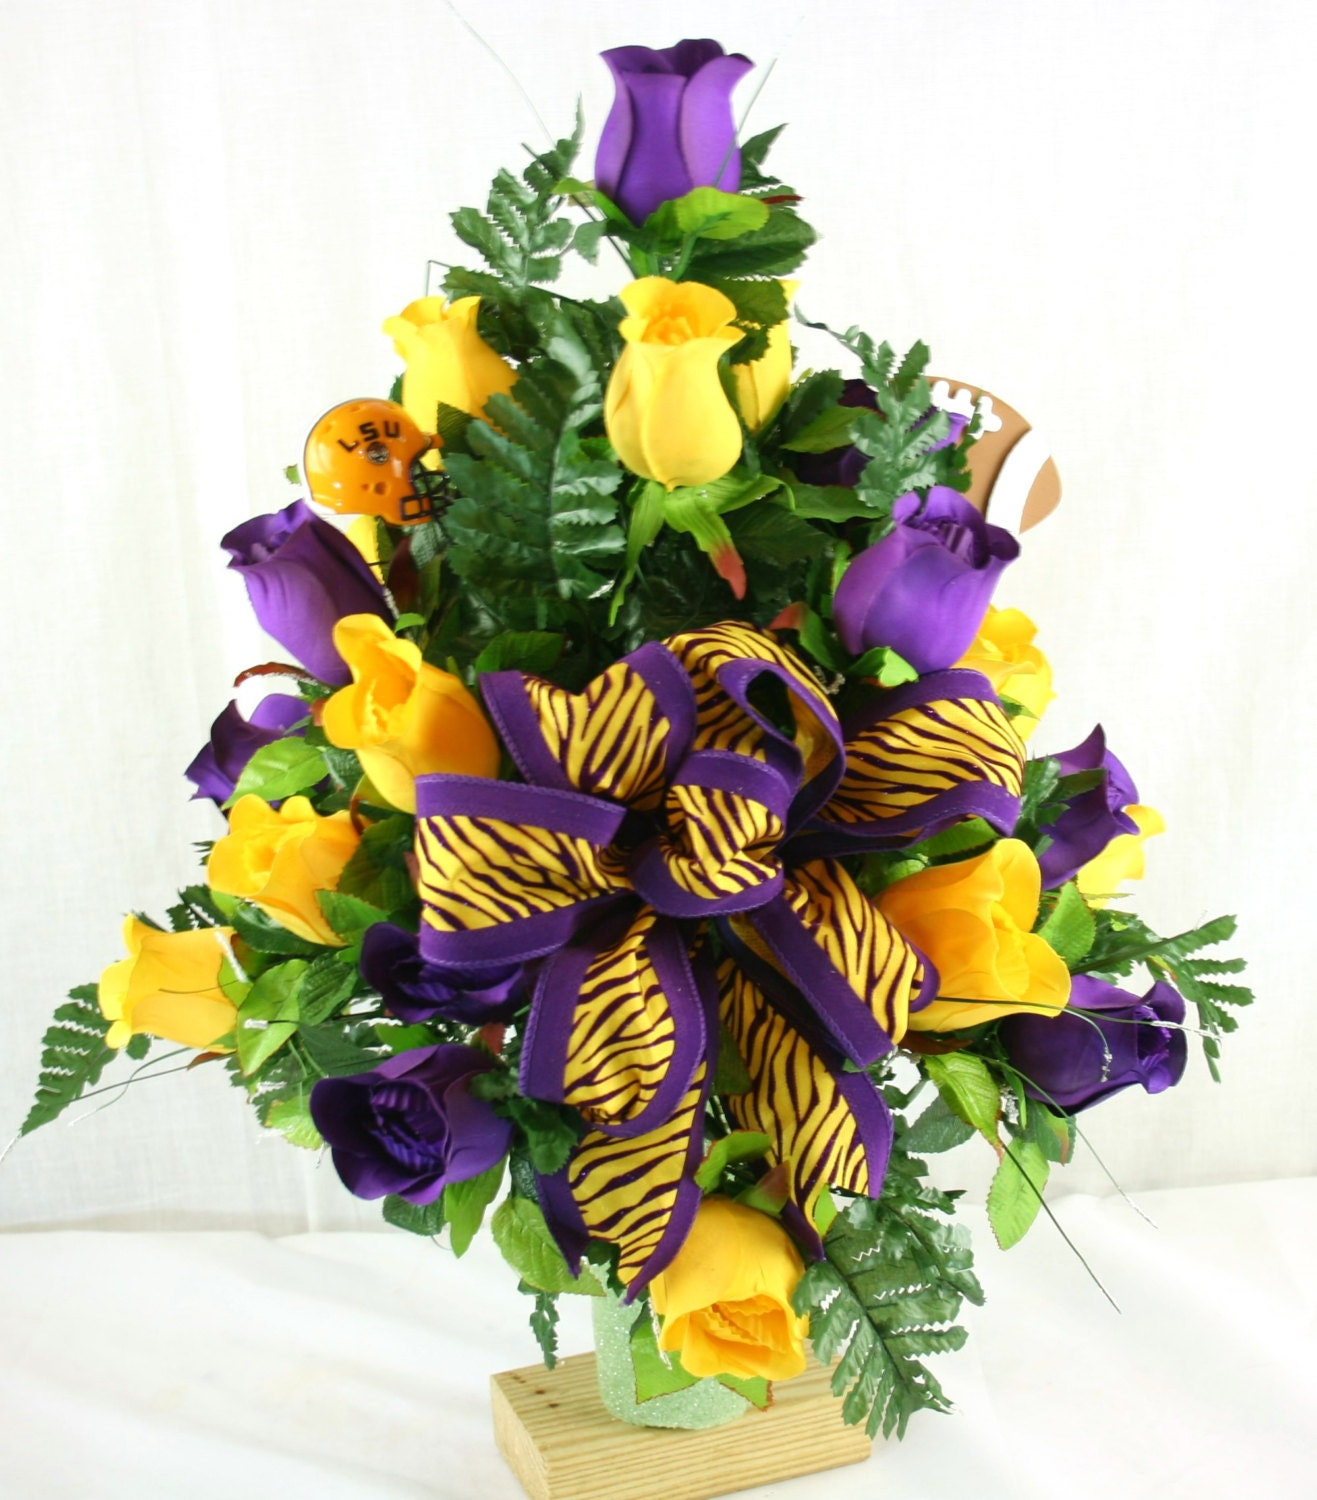 Lsu Tiger S Purple And Yellow Roses 3 Inch Vase By